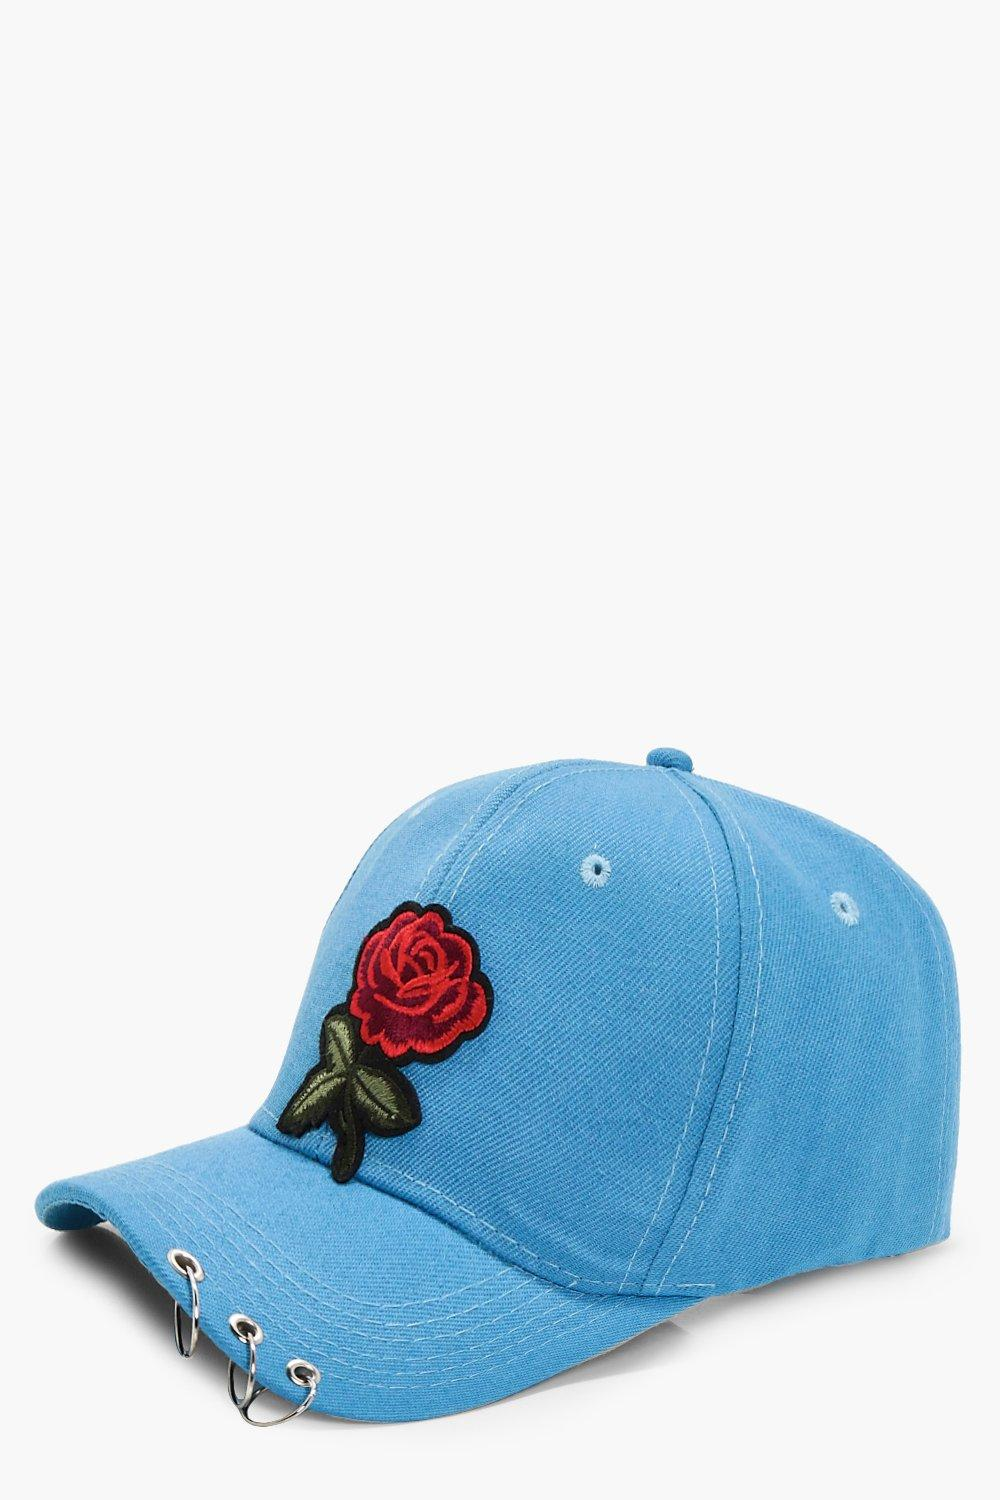 Rose Embroidery Cap - blue - Maya Rose Embroidery